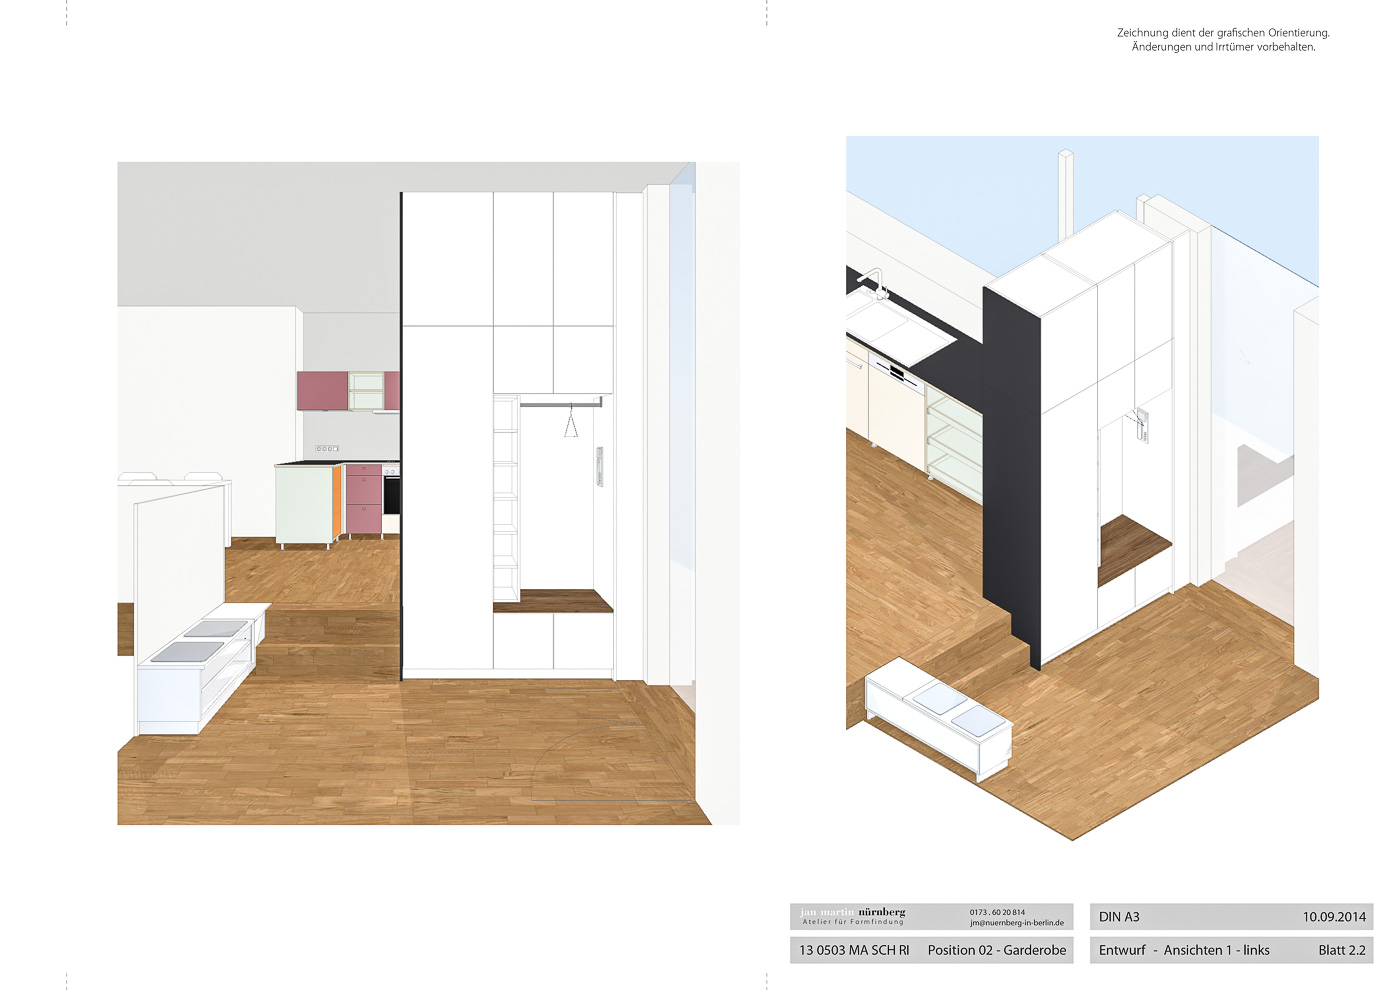 k che und garderobe realisiert 2014 jan martin n rnberg. Black Bedroom Furniture Sets. Home Design Ideas